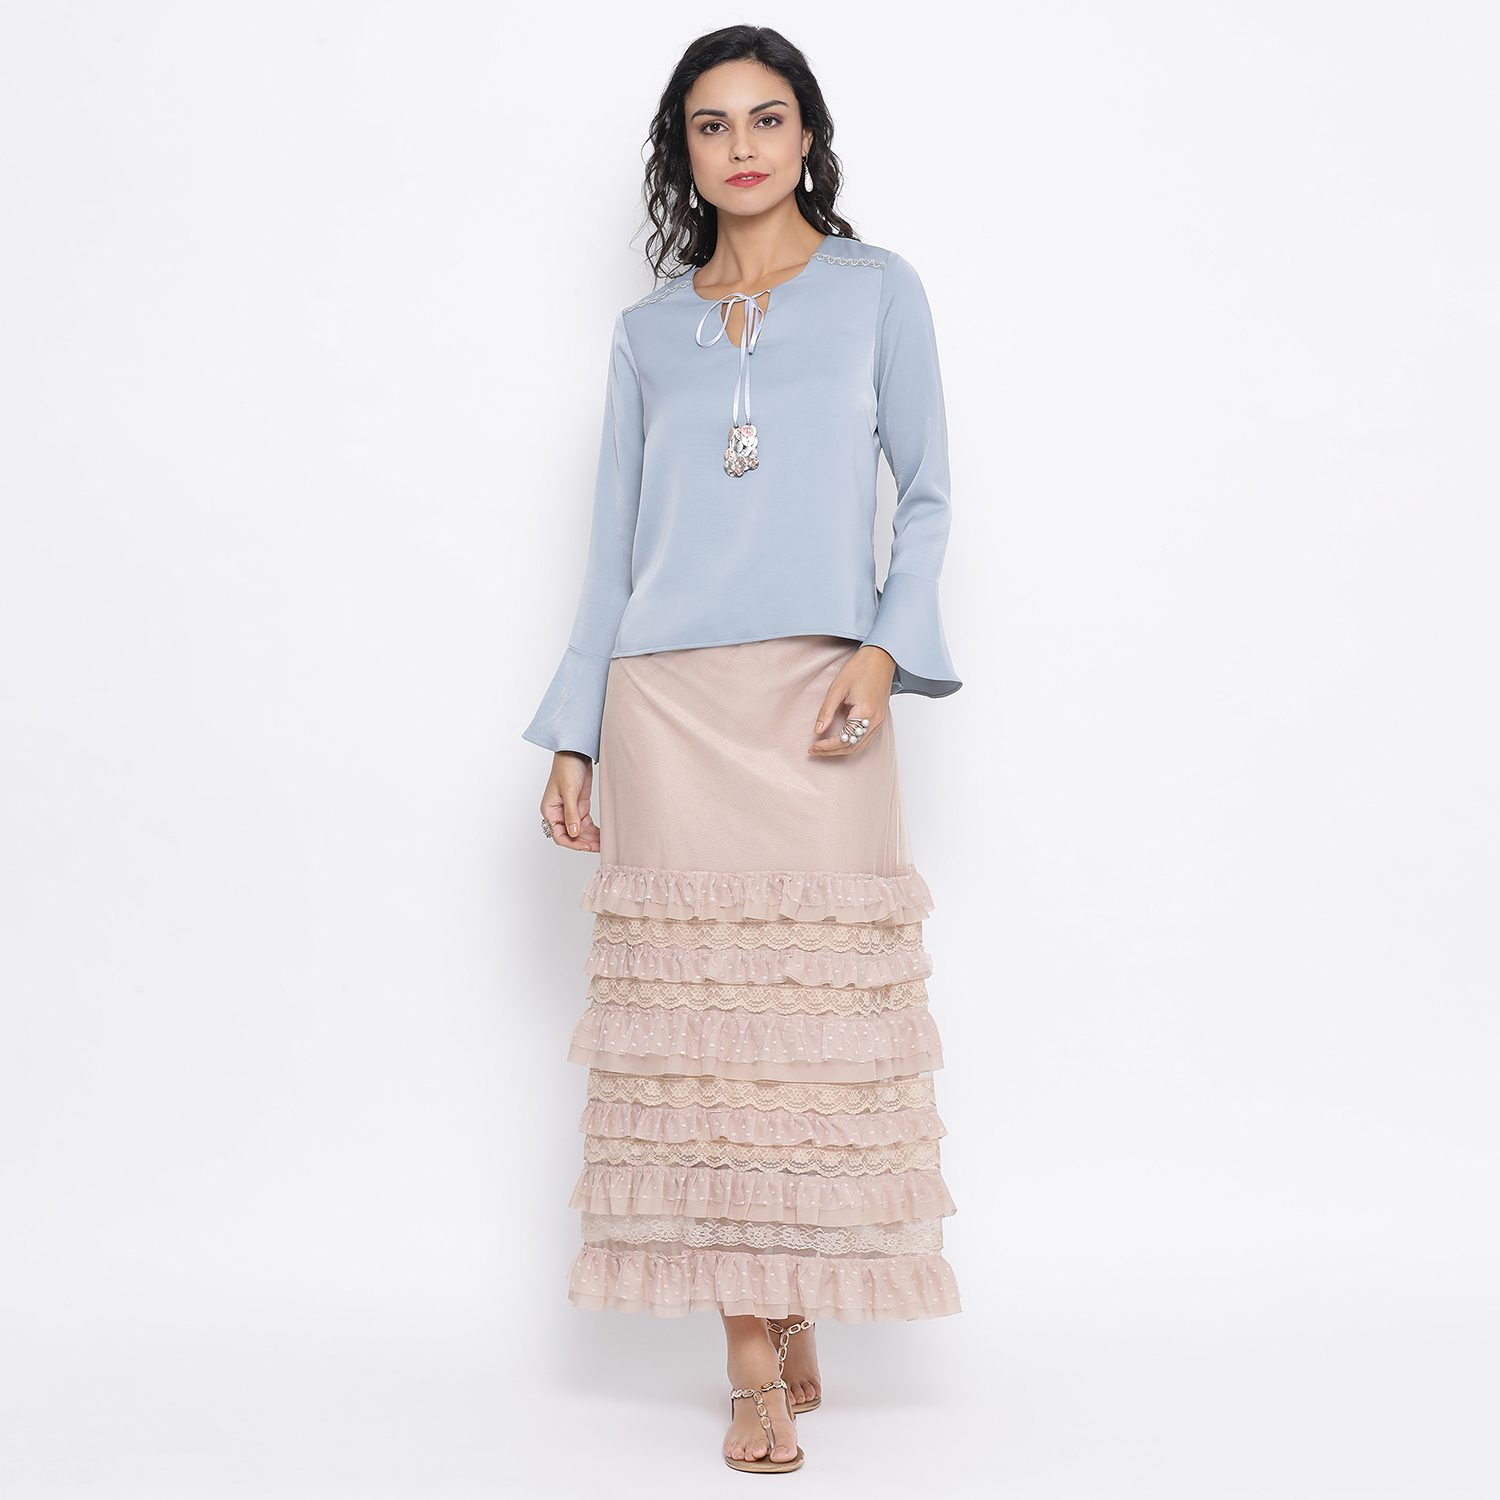 Buy Beige Net Skirt With Brown Elastic And Frills For Women